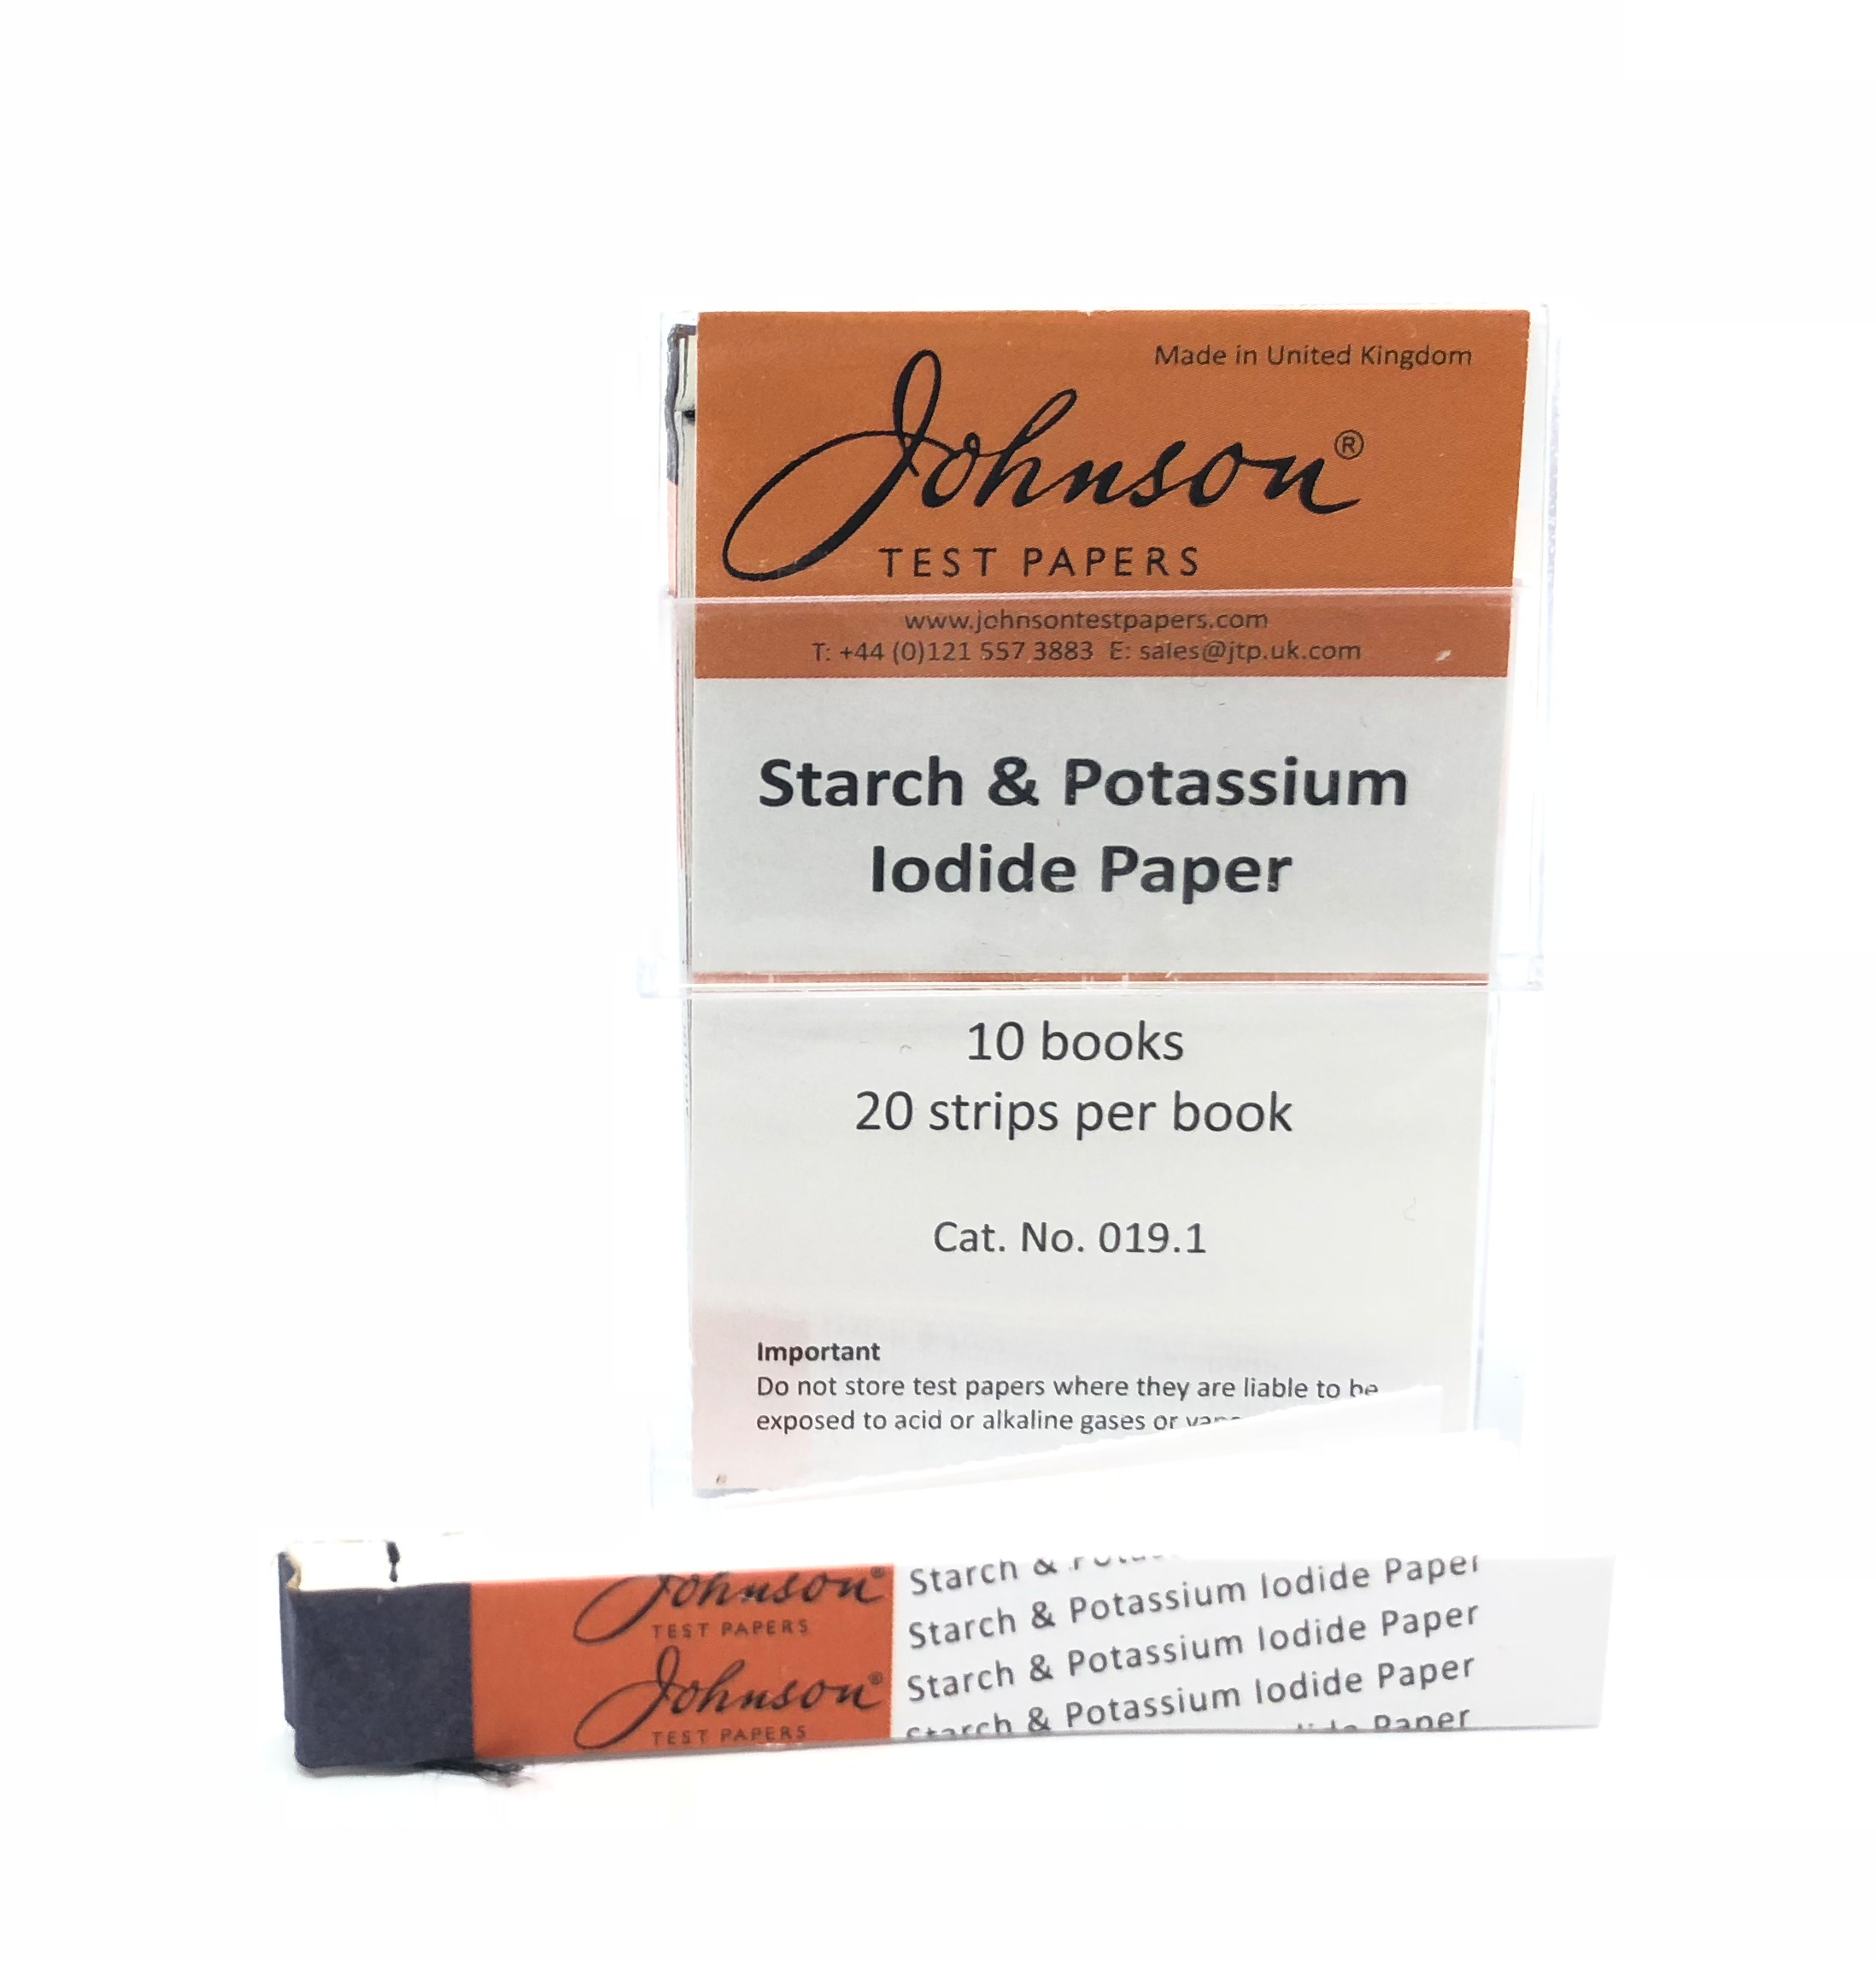 Starch & Potassium Iodide Paper (Box of 200 strips)